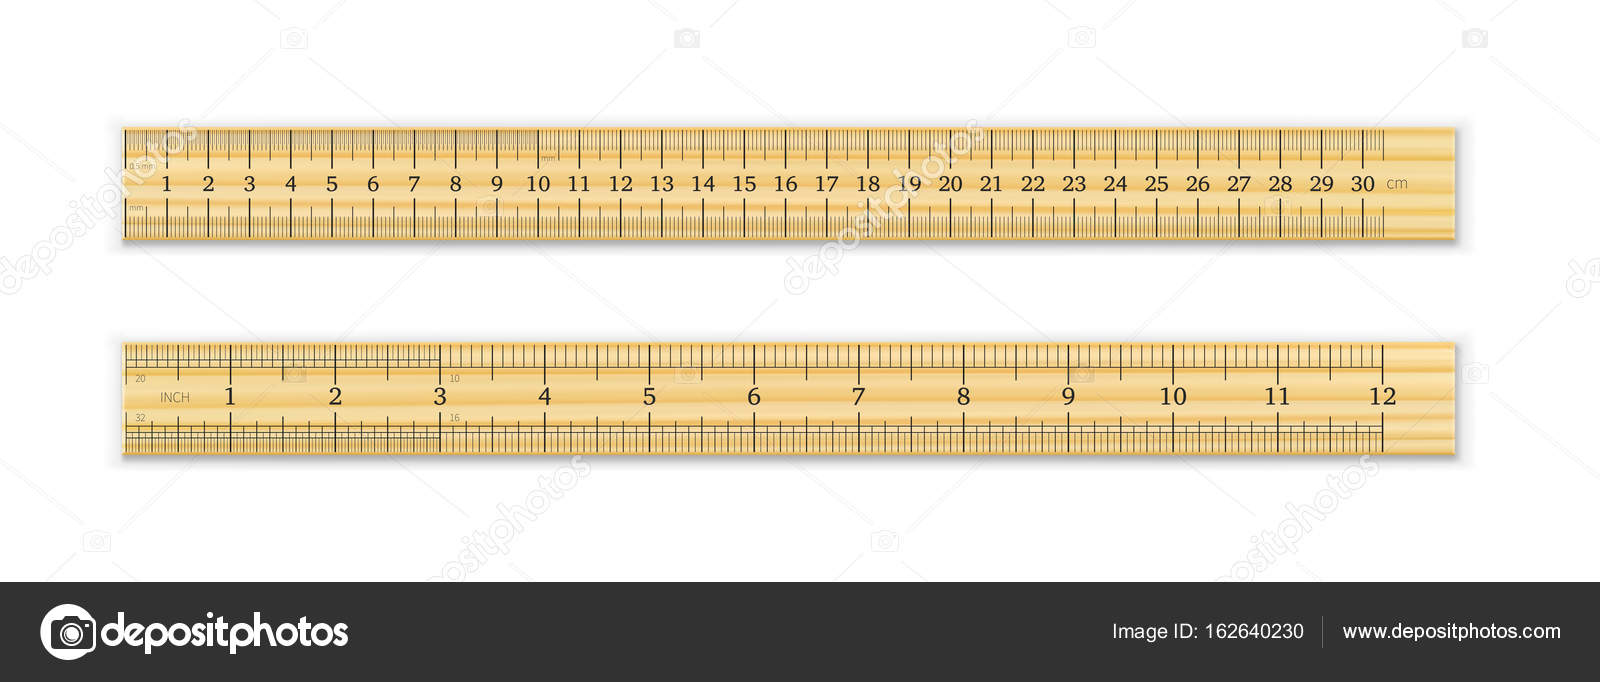 Realistic metal ruler of 30 centimeters and a metal ruler of 12 realistic metal ruler of 30 centimeters and a metal ruler of 12 inches stock vector buycottarizona